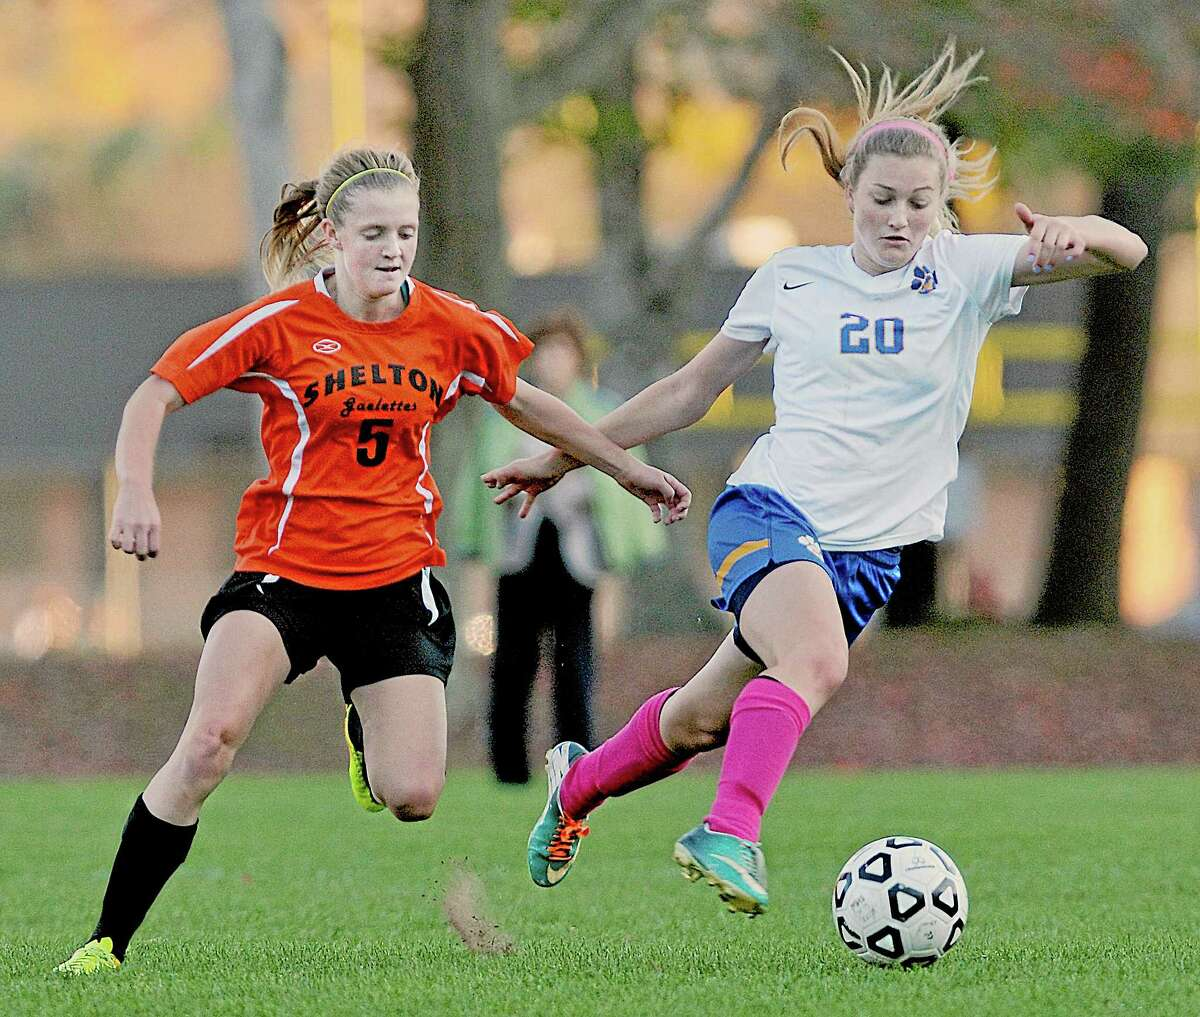 Mercy junior midfielder Kendra Landy moves the ball past Shelton's Laurel Bailey Monday afternoon at the home field of the Tigers. Landy assisted Olivia Ozcyz in her first of four goals. Bailey scored in the first half for the Gaels. Mercy won, 6-1.